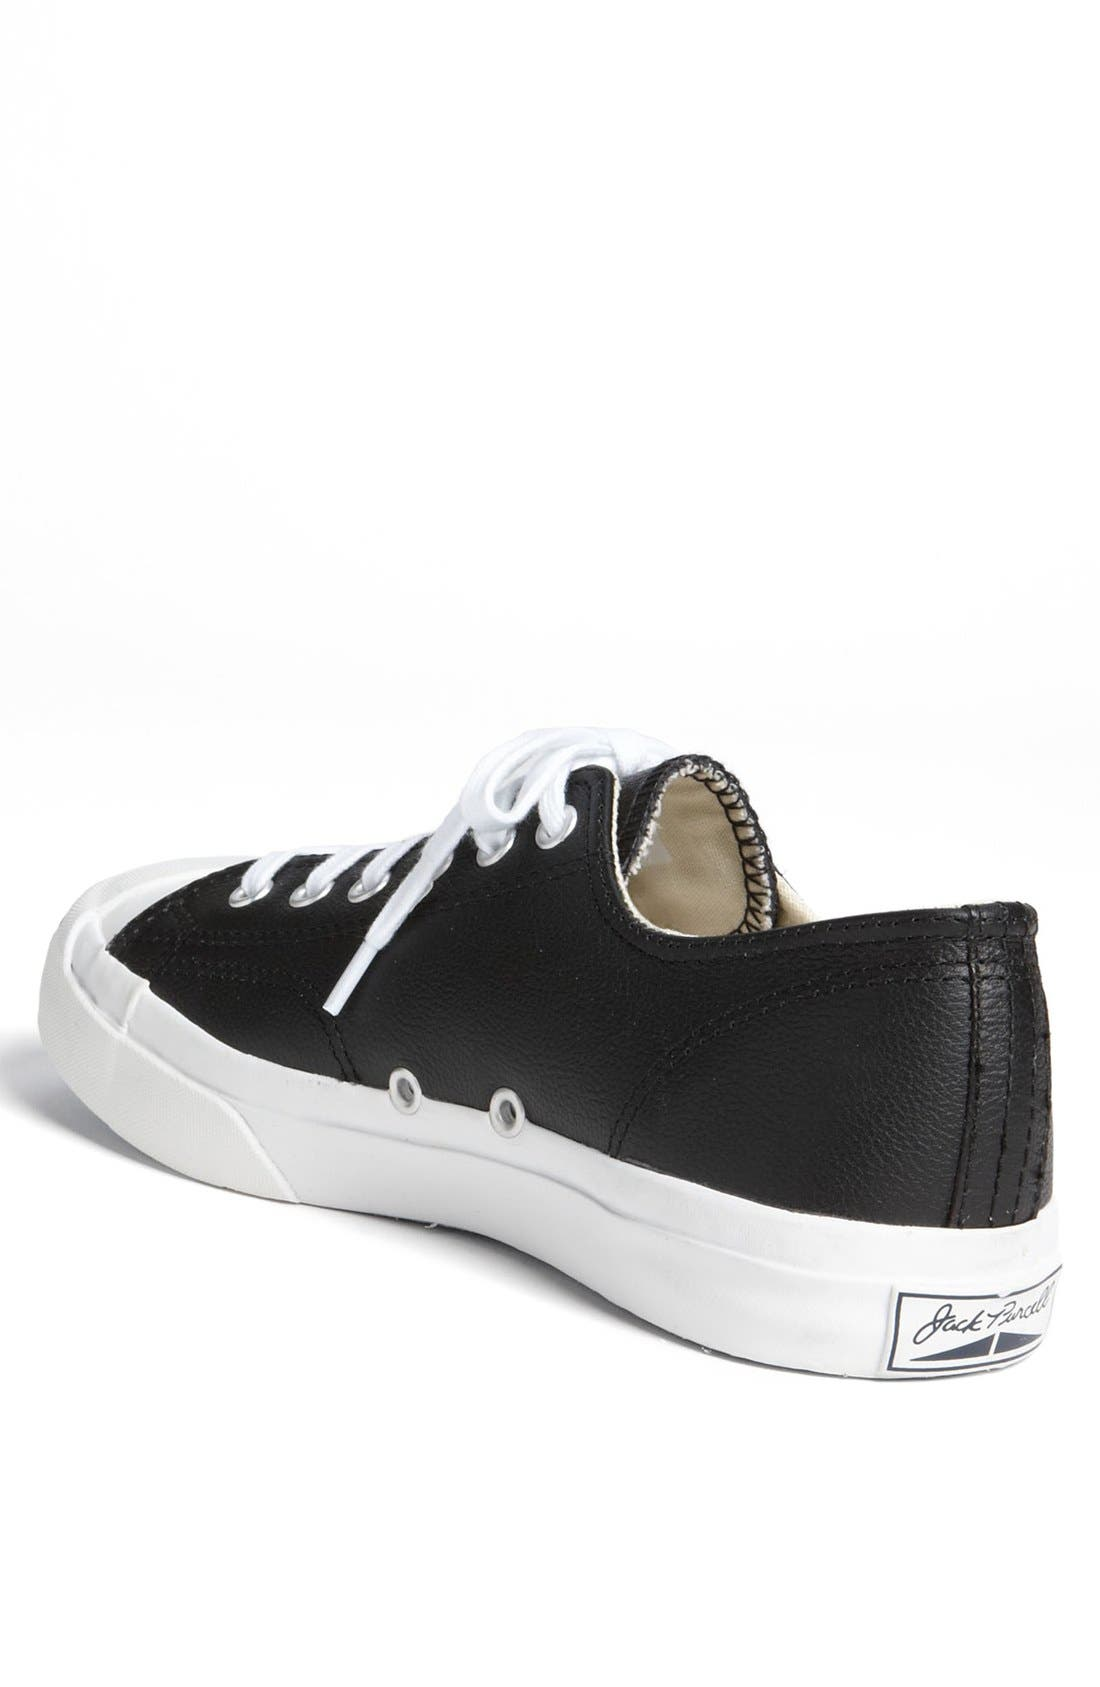 Alternate Image 2  - Converse 'Jack Purcell' Leather Sneaker (Men)